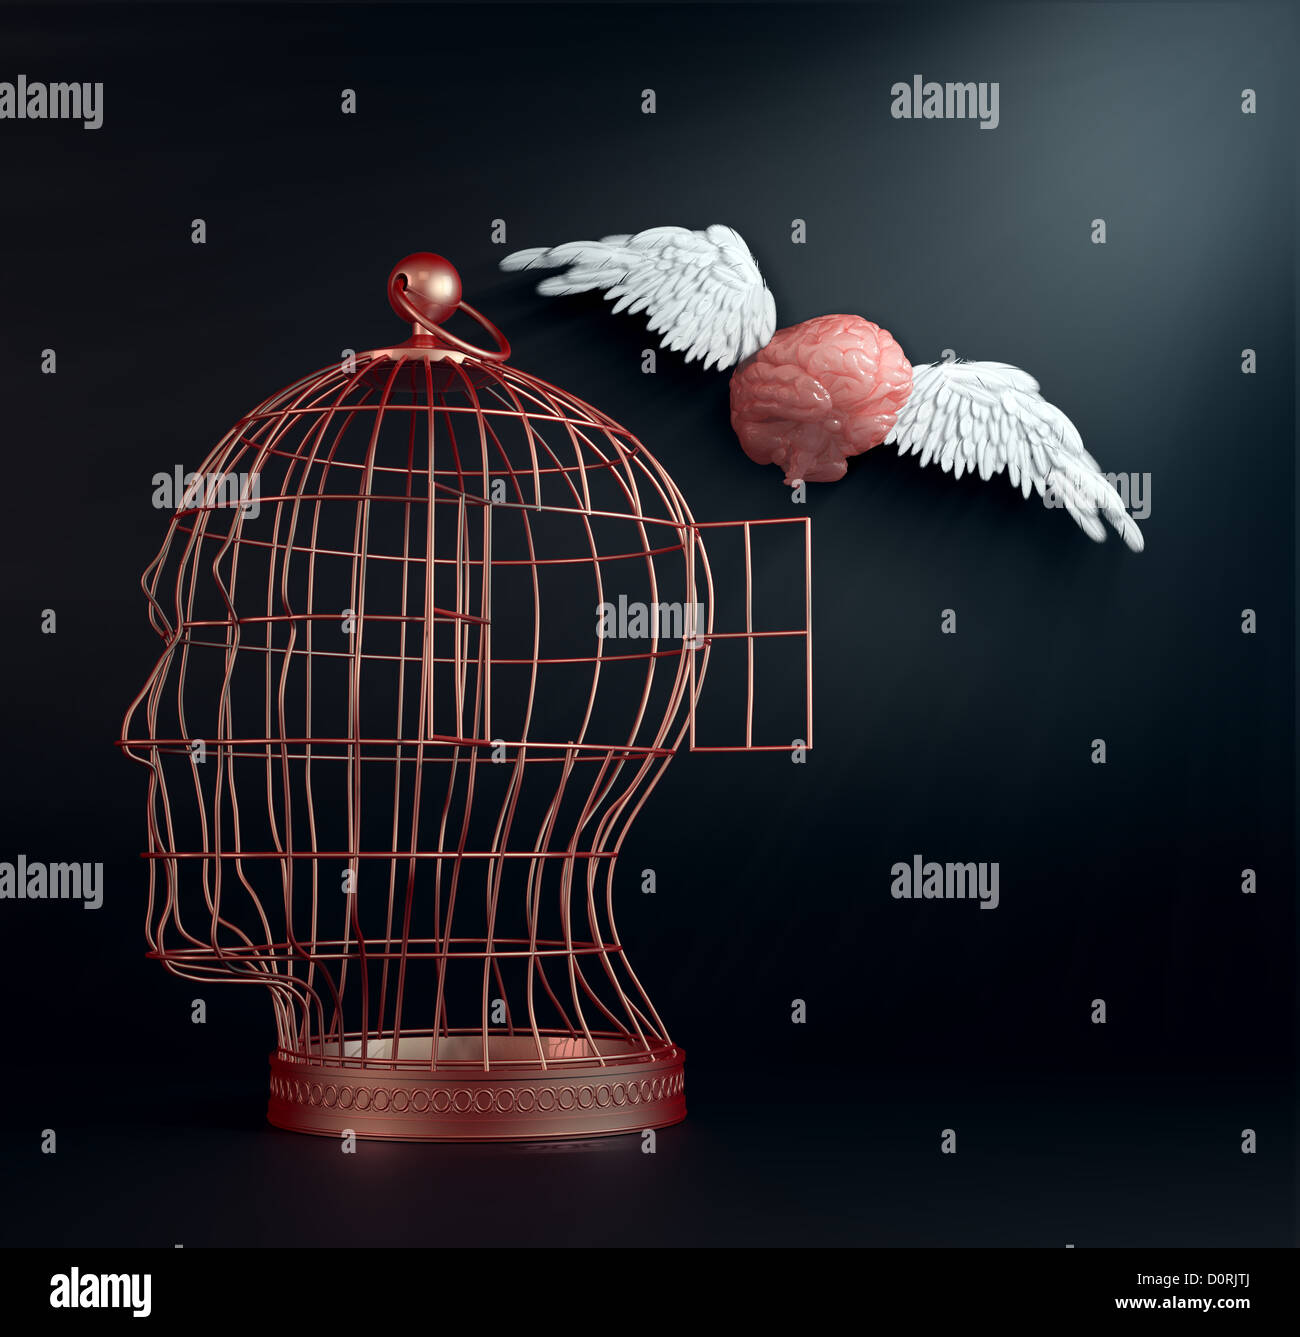 Winged brain - Stock Image